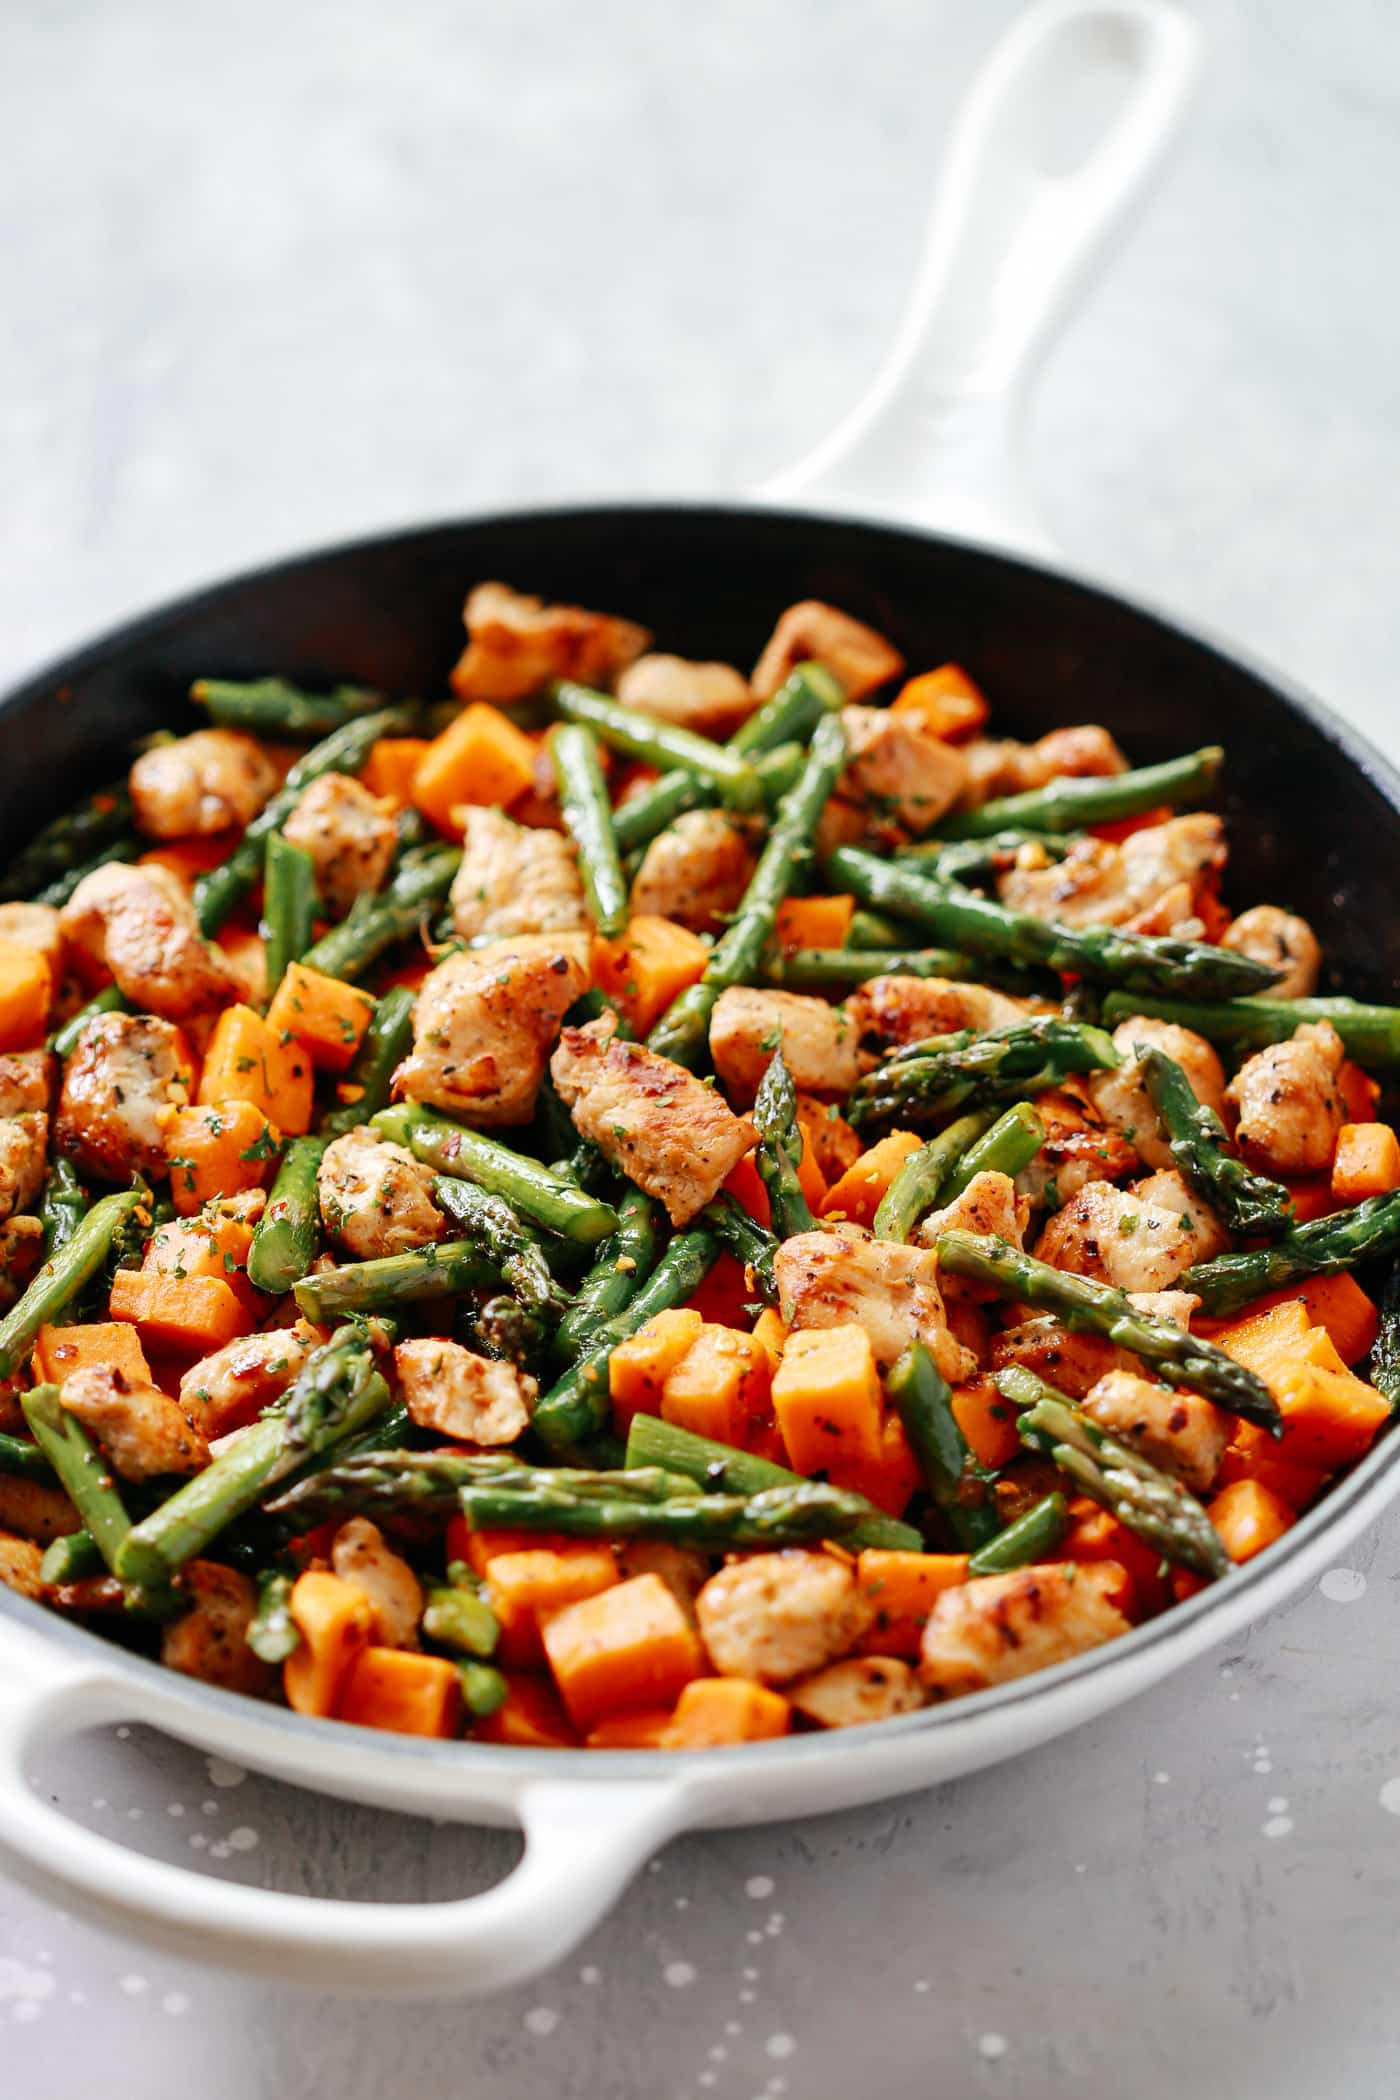 13. This Asparagus Sweet Potato Chicken Skillet